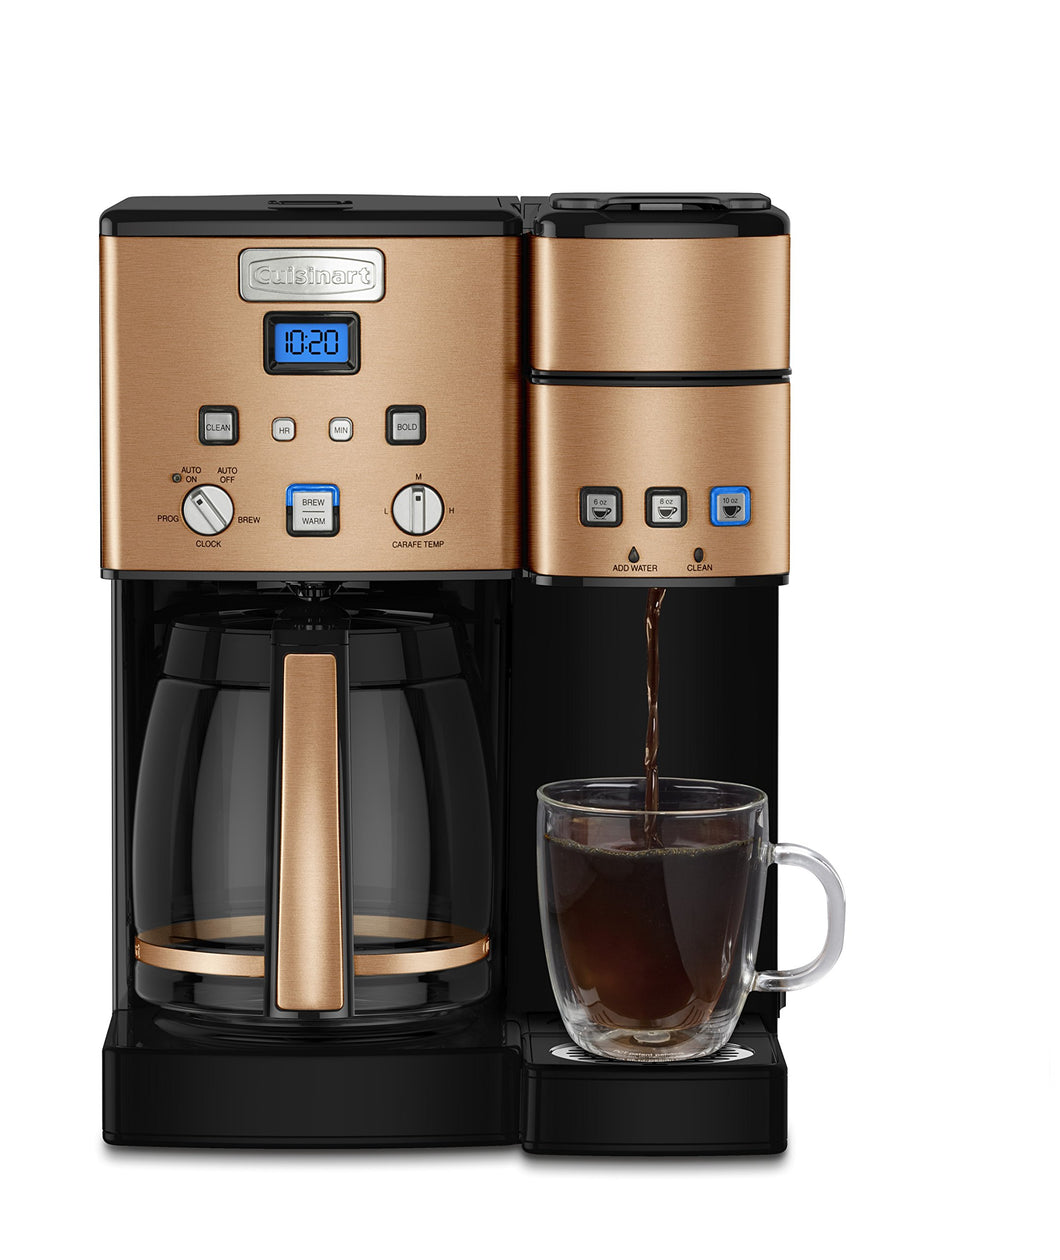 Cuisinart SS-15CP 12 Cup Coffee Maker And Single-Serve Brewer, Copper